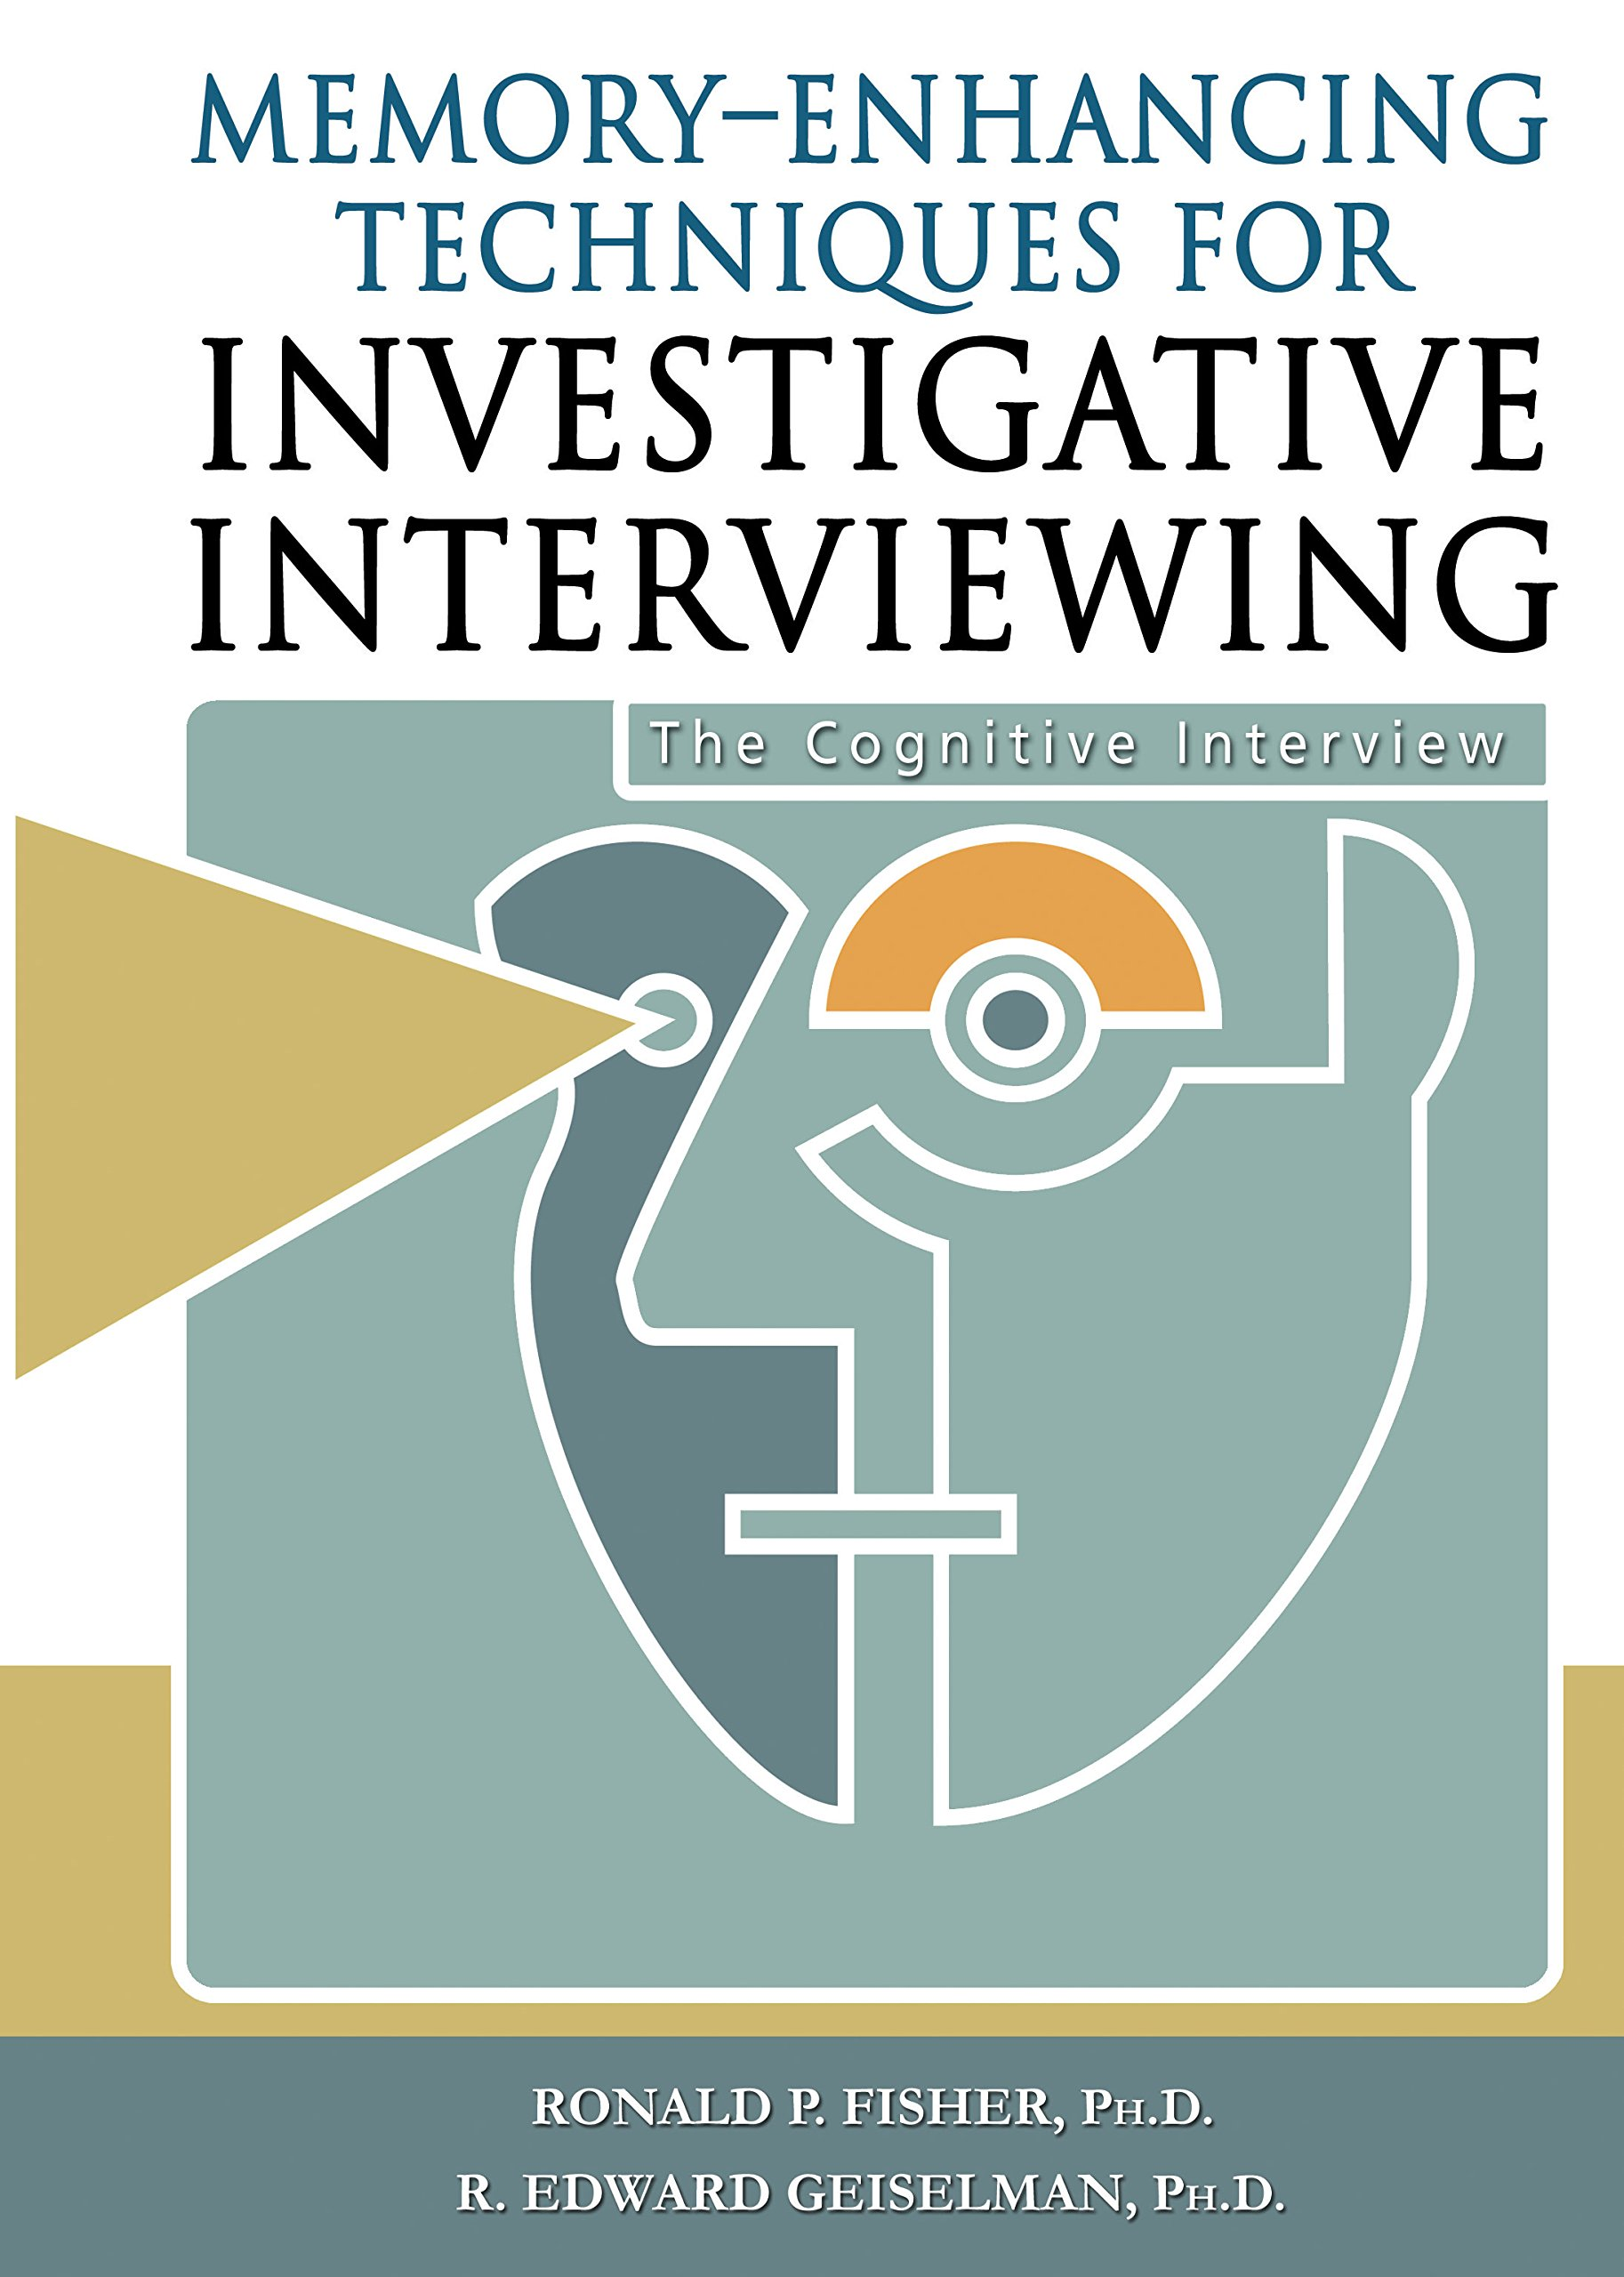 memory enhancing techniques for investigative interviewing the memory enhancing techniques for investigative interviewing the cognitive interview amazon co uk ronald p fisher 9780398061210 books